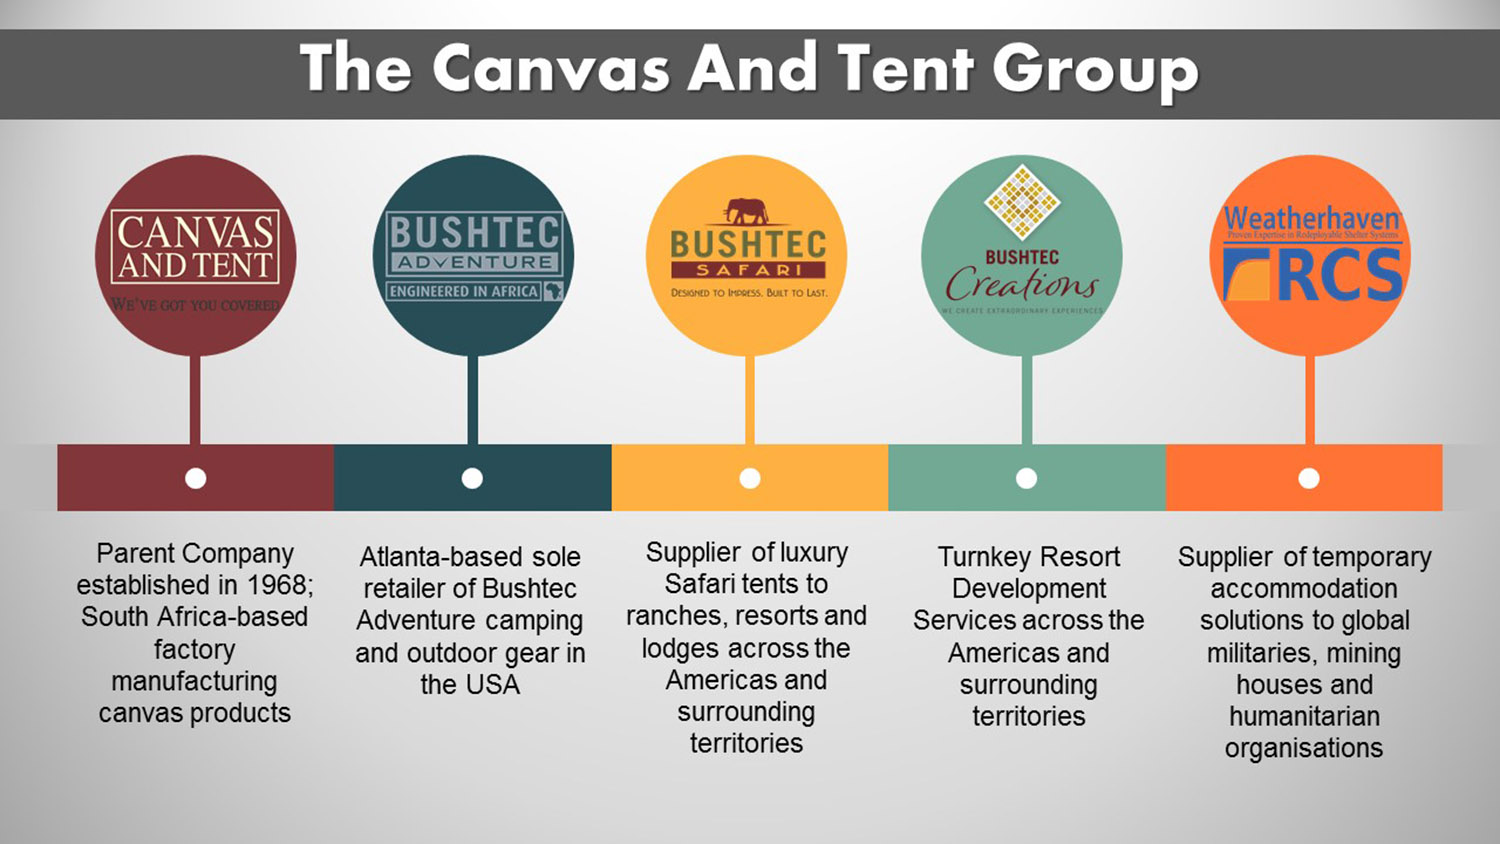 Infographic with Canvas and Tent, Bushtec Adventure, Bushtec Safari and Weatherhaven